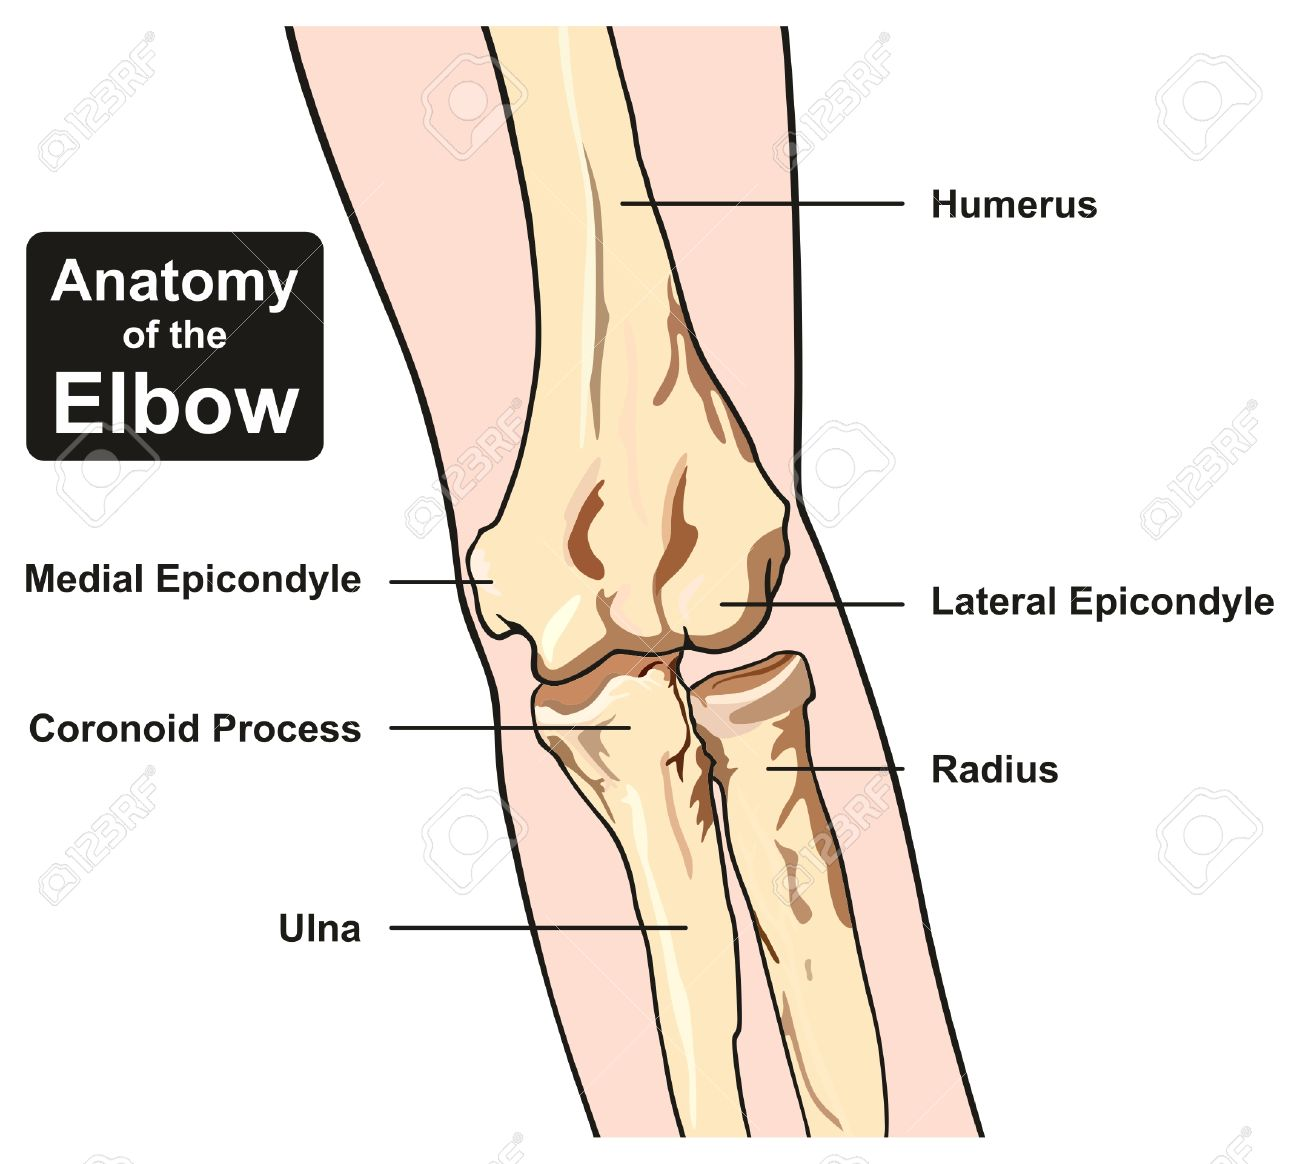 Anatomy Of The Elbow Joint Diagram Including All Bones Humerus ...